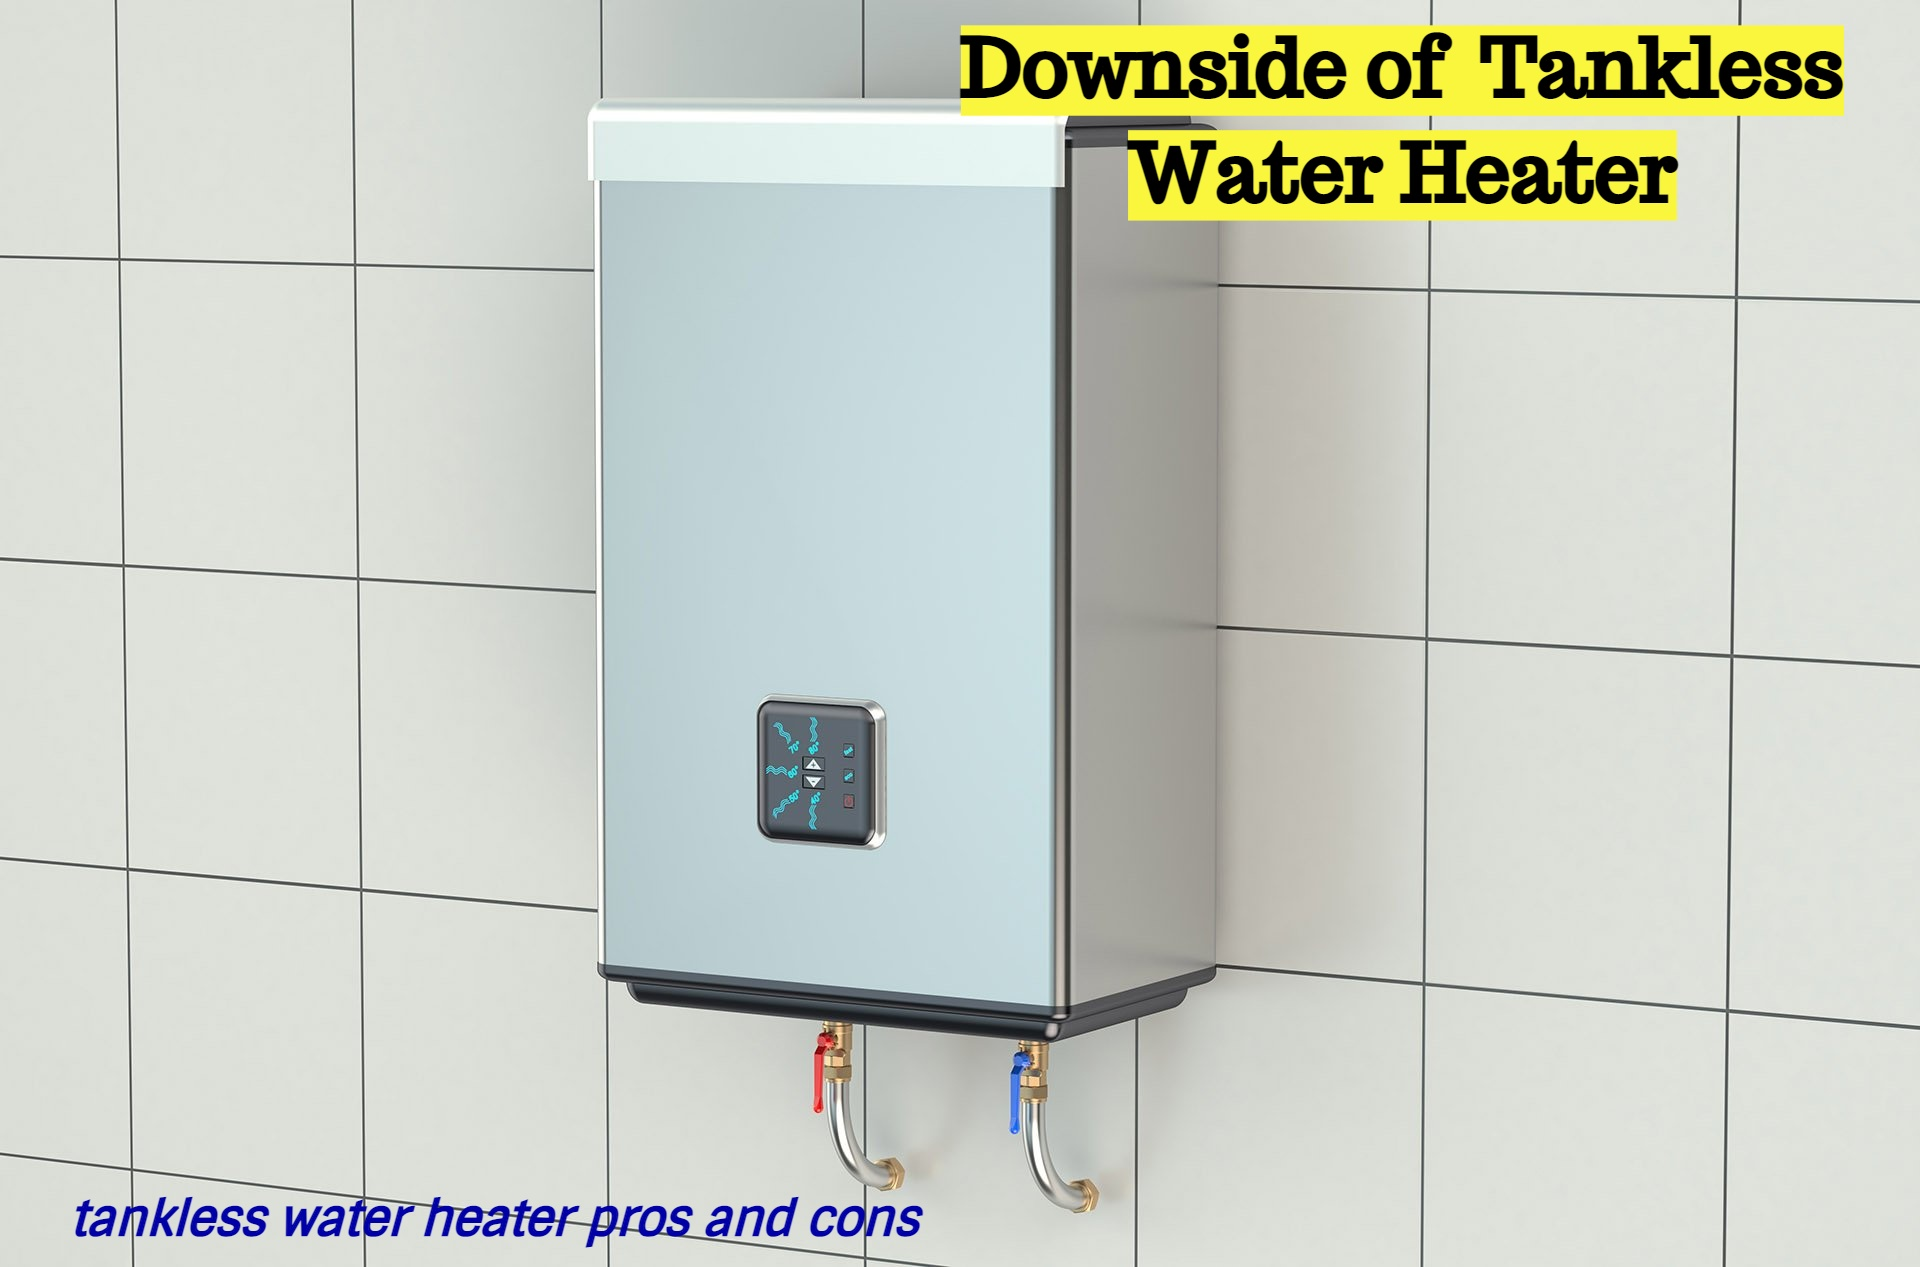 downside of a tankless water heater